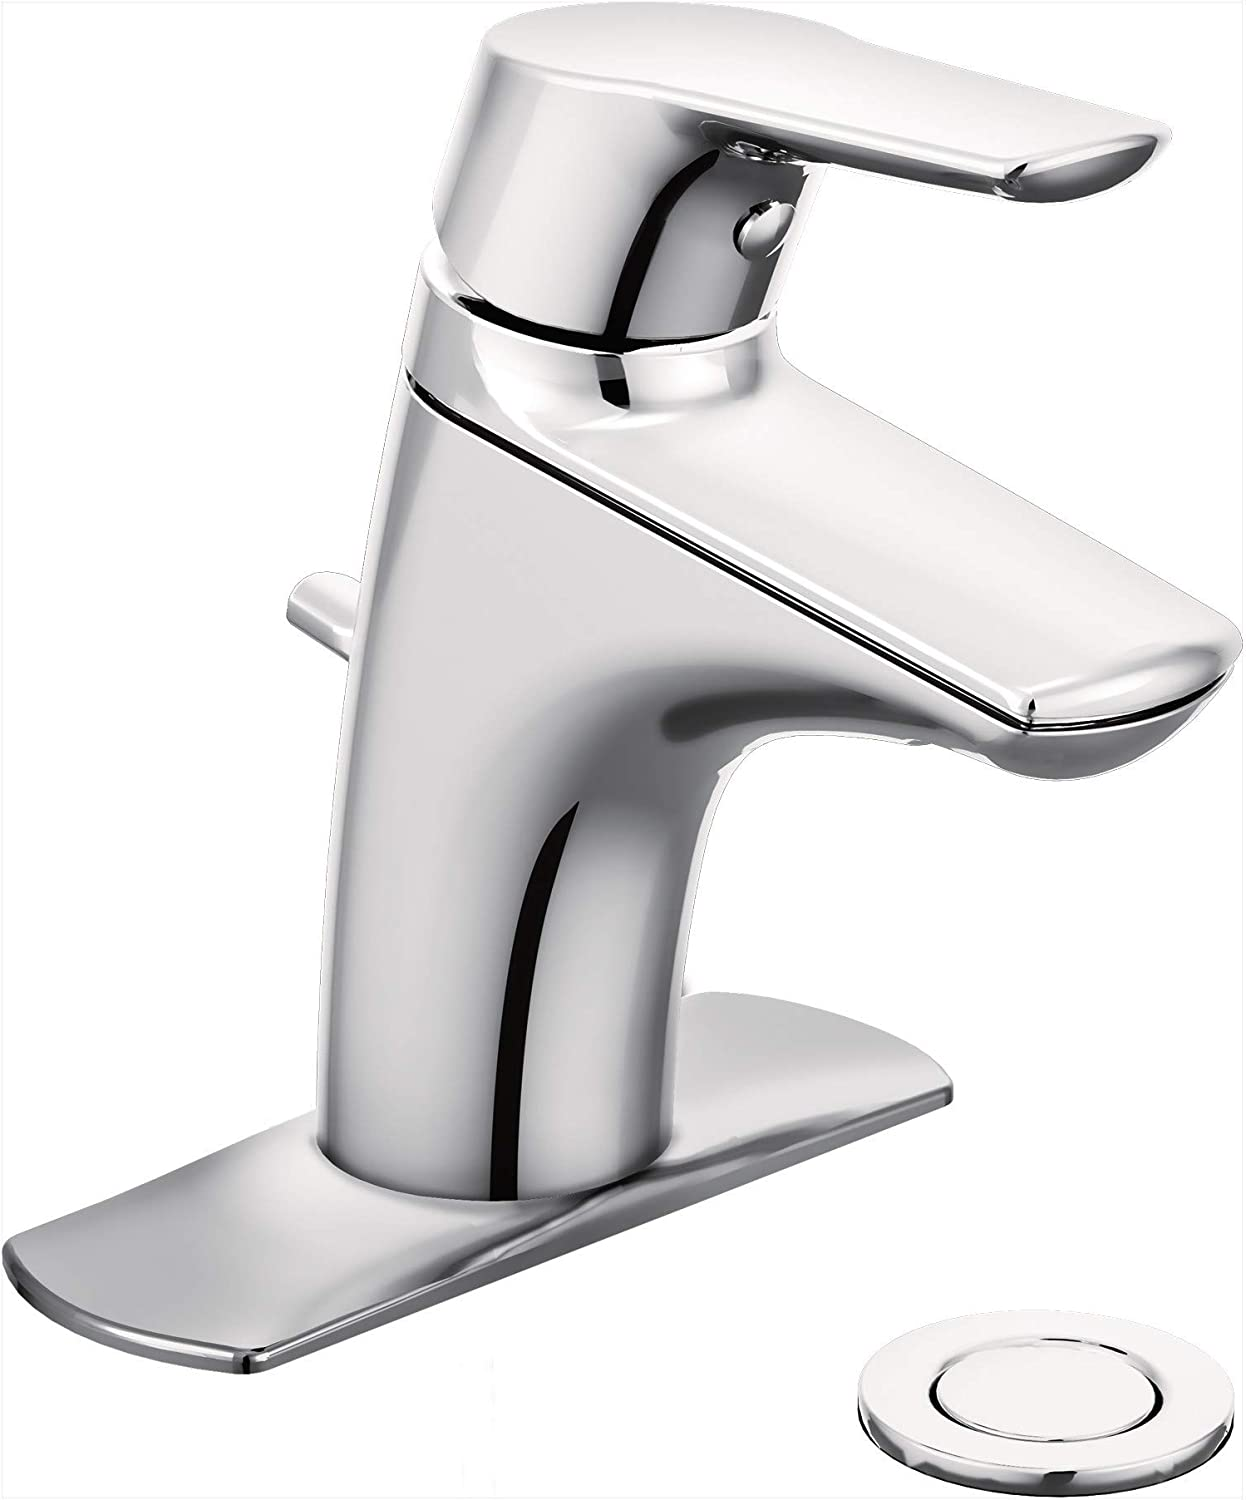 Moen 6810 Method One Handle Low Arc Bathroom Faucet 1 Count Chrome Touch On Bathroom Sink Faucets Amazon Com